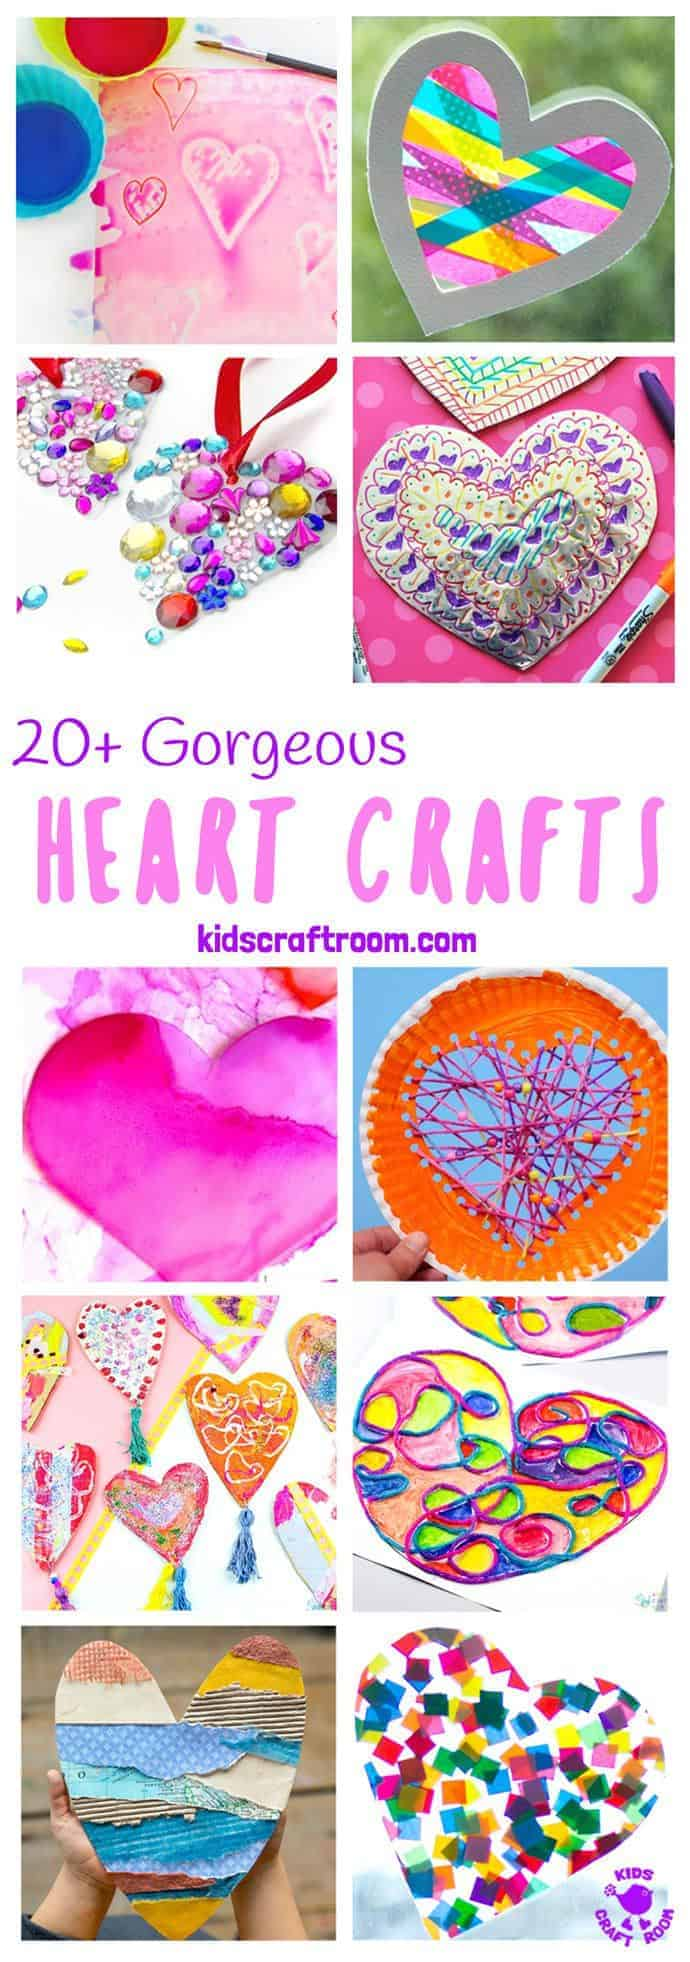 GORGEOUS HEART CRAFTS FOR KIDS - We've gathered together 20+ Heart Crafts For Kids that are stunning! All of these heart ideas are really achievable and most can be made with the type of supplies you've probably got in your art and craft cupboard already. Your kids will love them! Great for Mother's Day, Valentines or any time you want to spread a little love. #heart #heartcrafts #valentinesday #valentinecraft #valentinesdaycrafts #kidscrafts #craftsforkids #kidsactivities